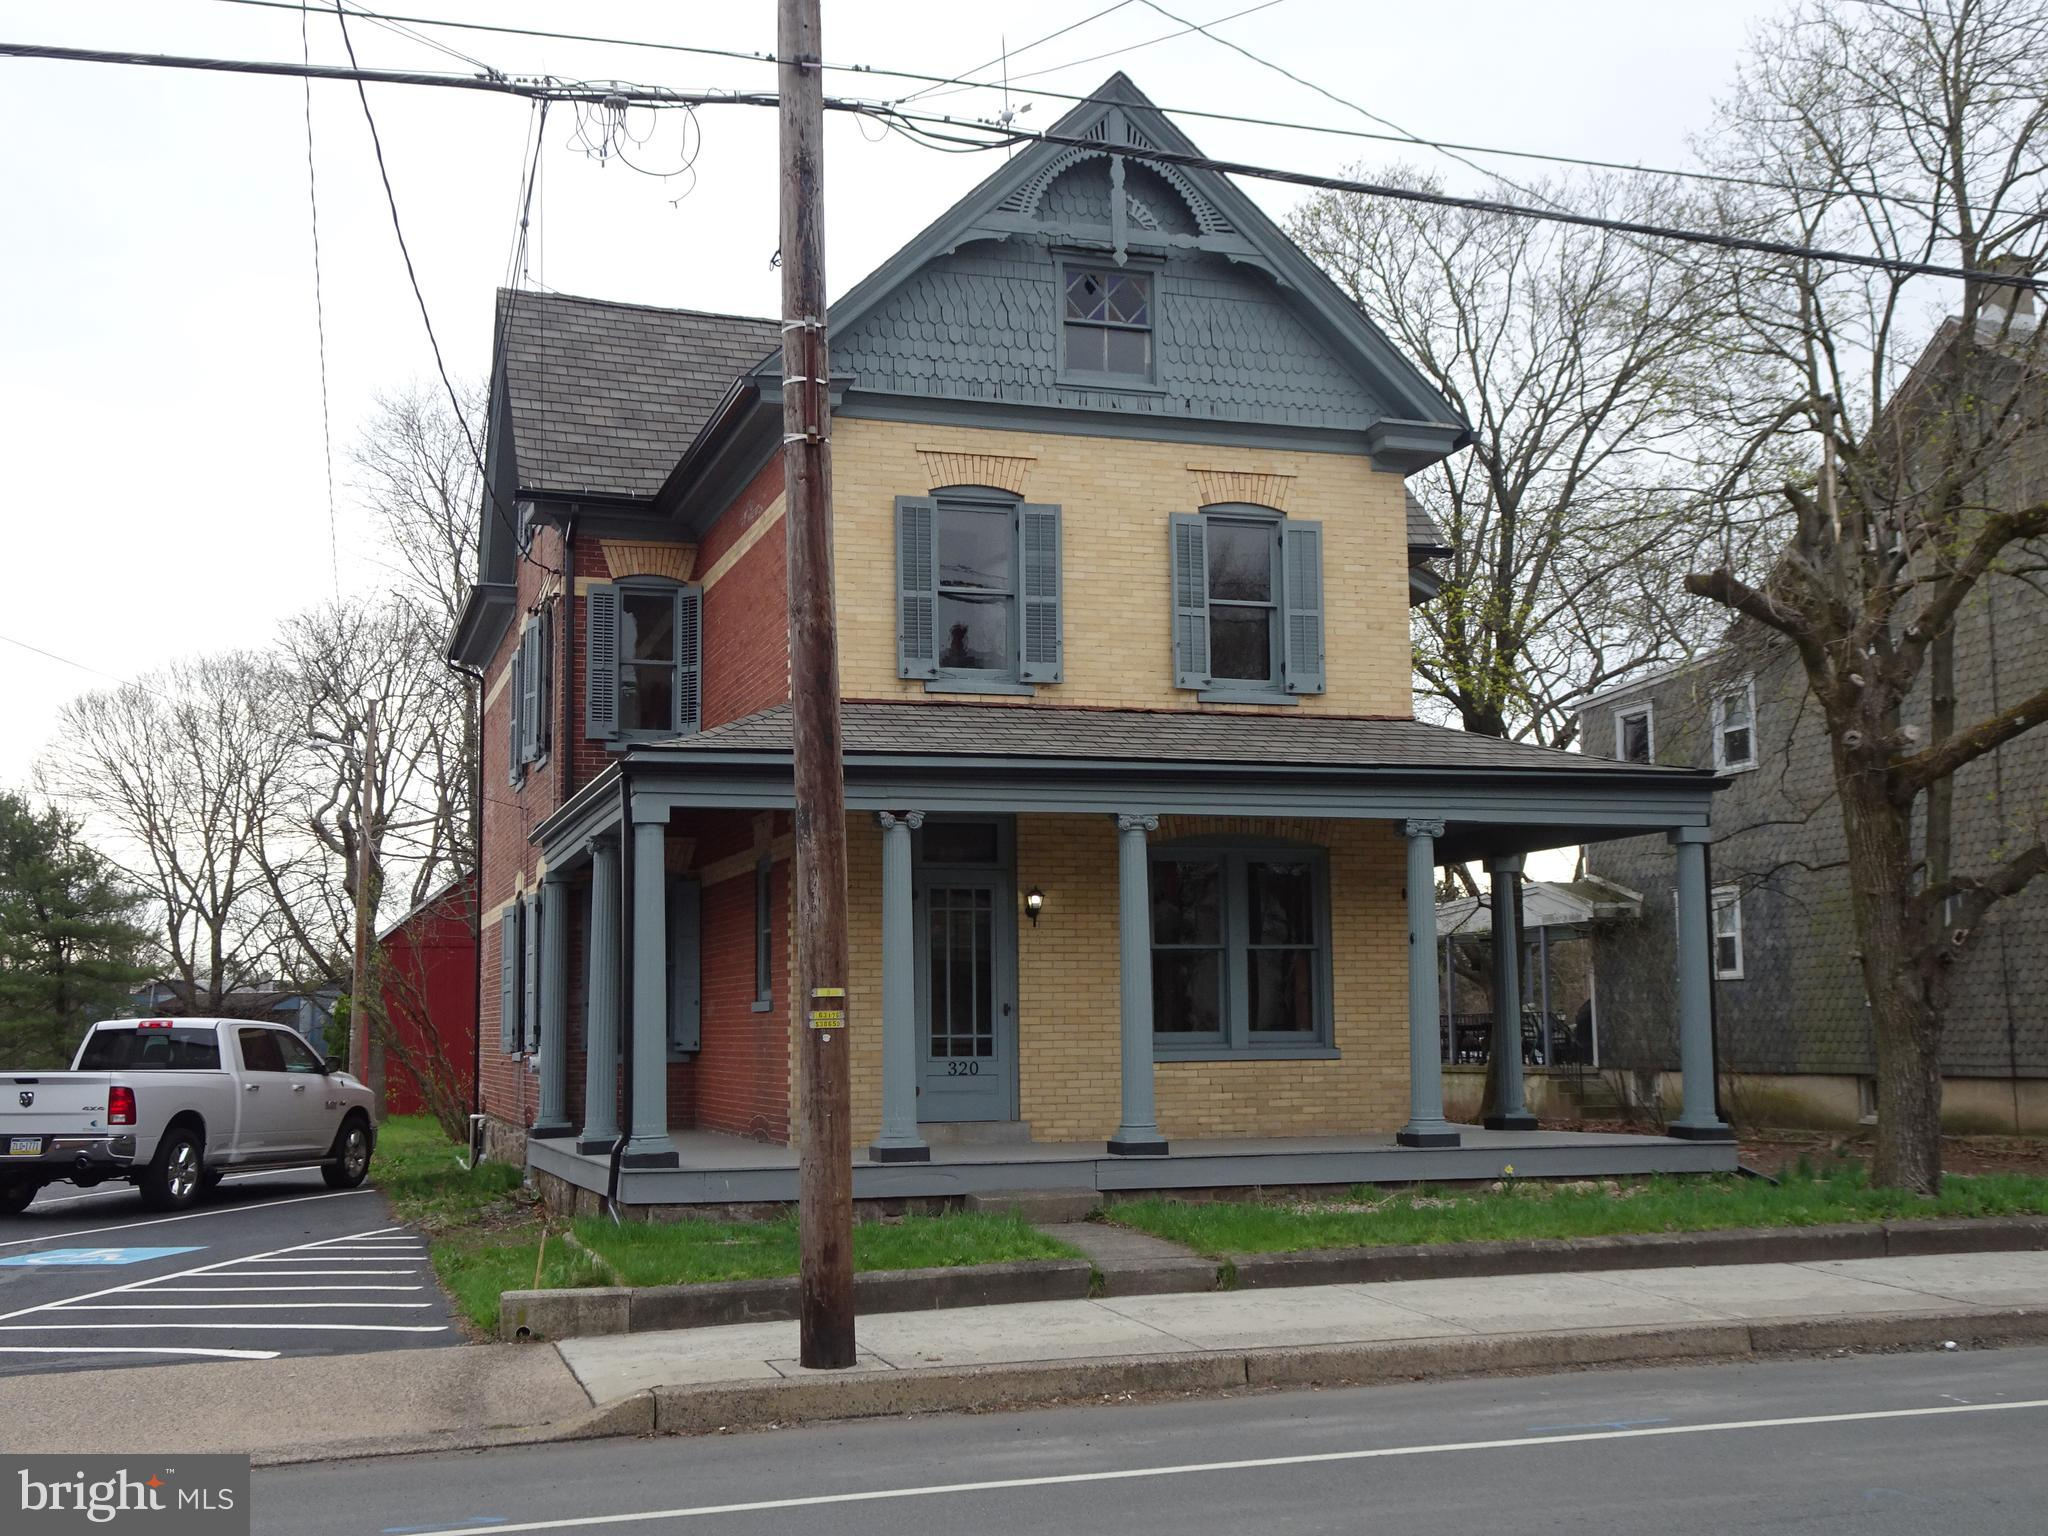 320 MAIN STREET, RED HILL, PA 18076